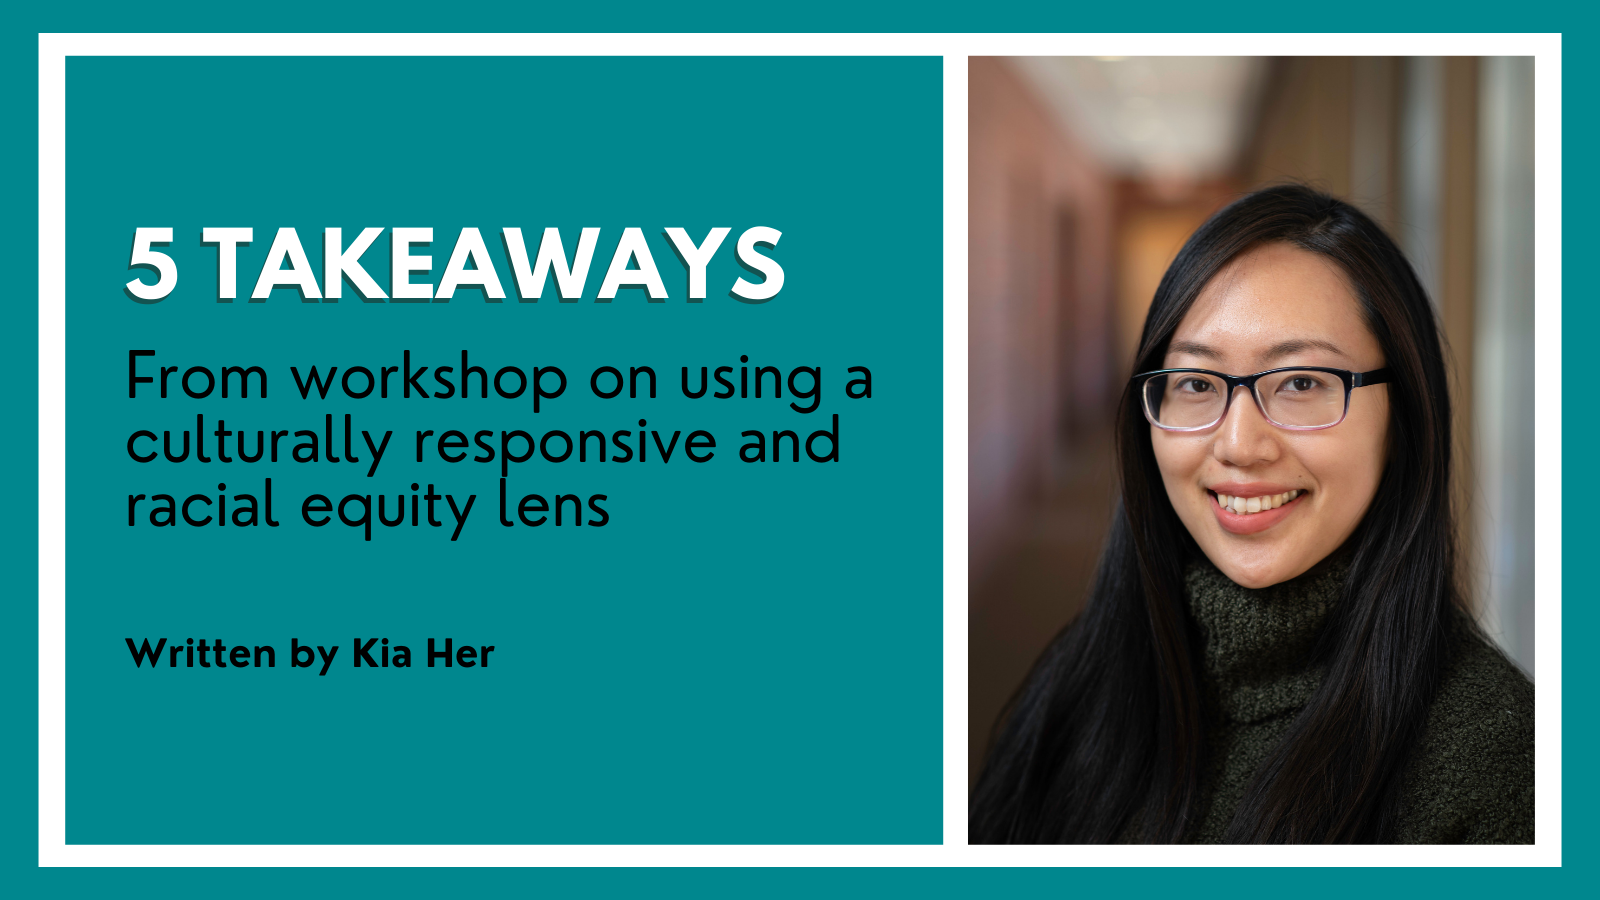 """An image graphic that features a headshot of Kia Her and the title of the article: """"5 Takeaways From workshop on using a culturally responsive and racial equity lens"""""""